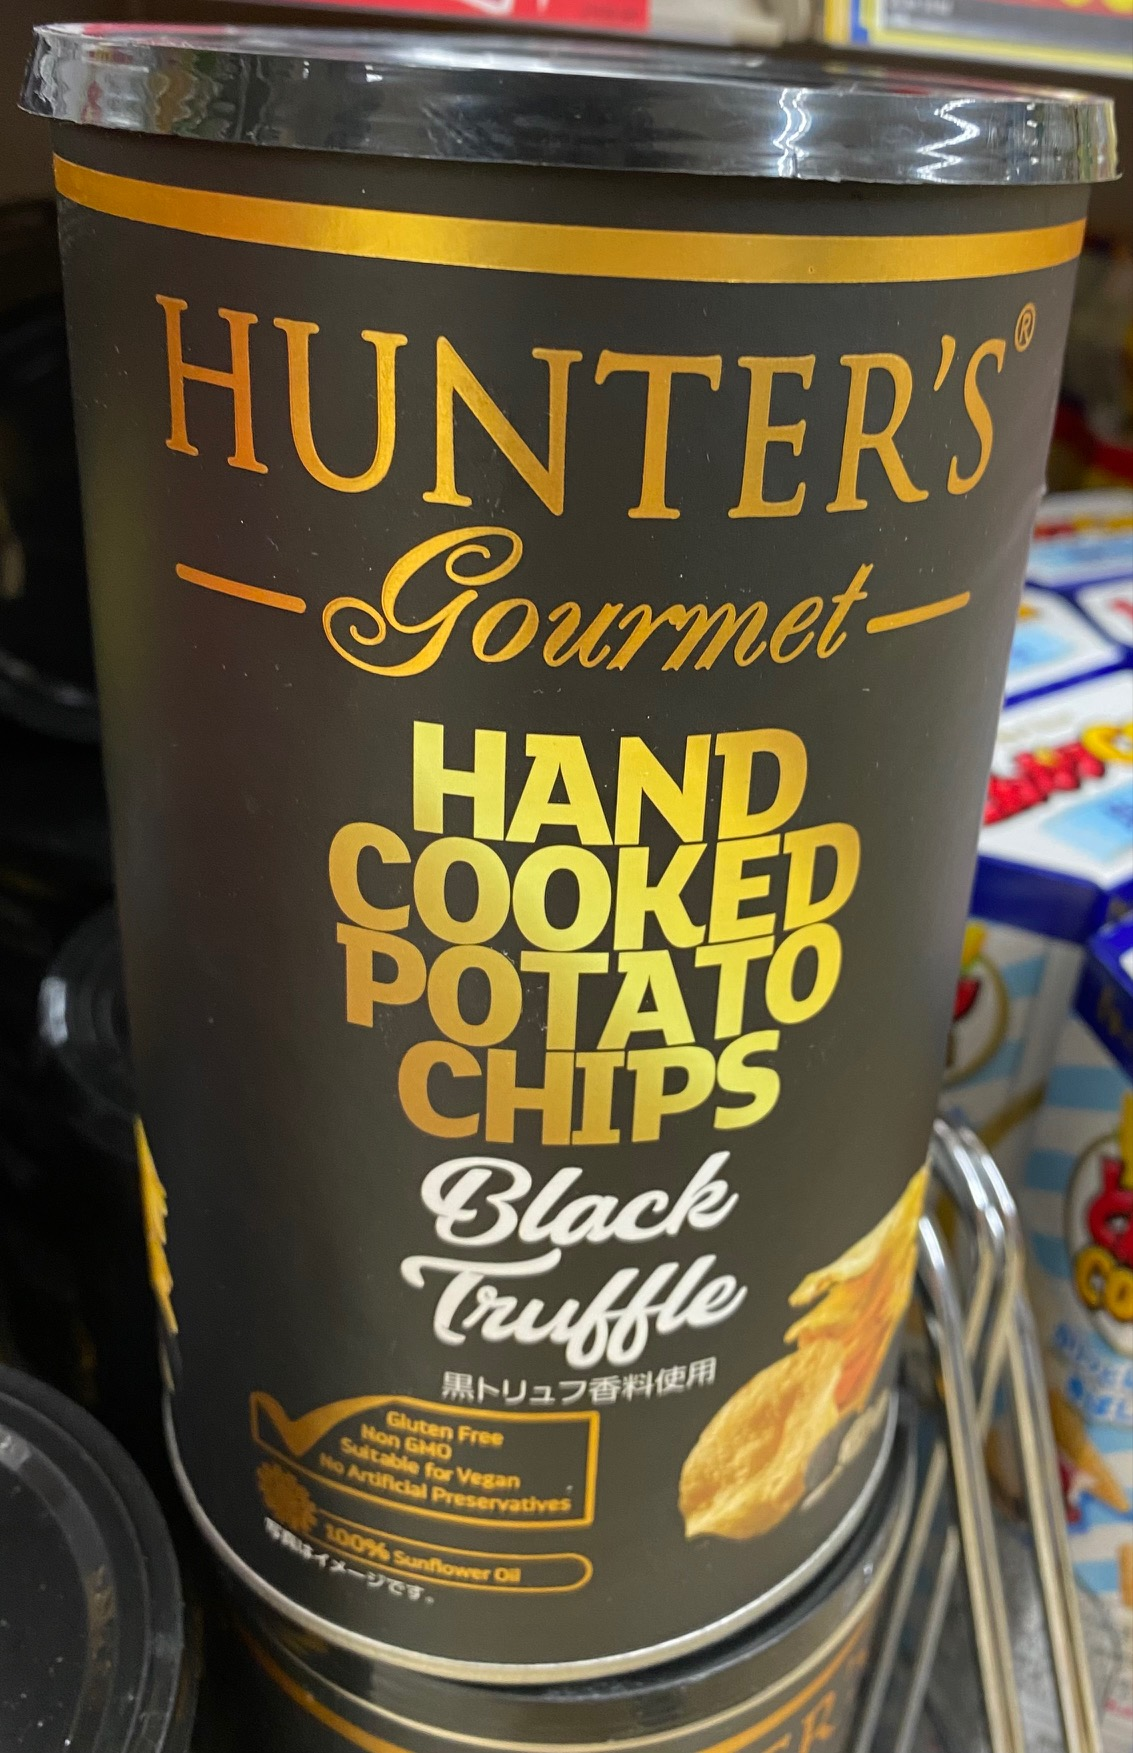 Hunter's Gourmet Black Truffle Hand Cooked Potato Chips, large package